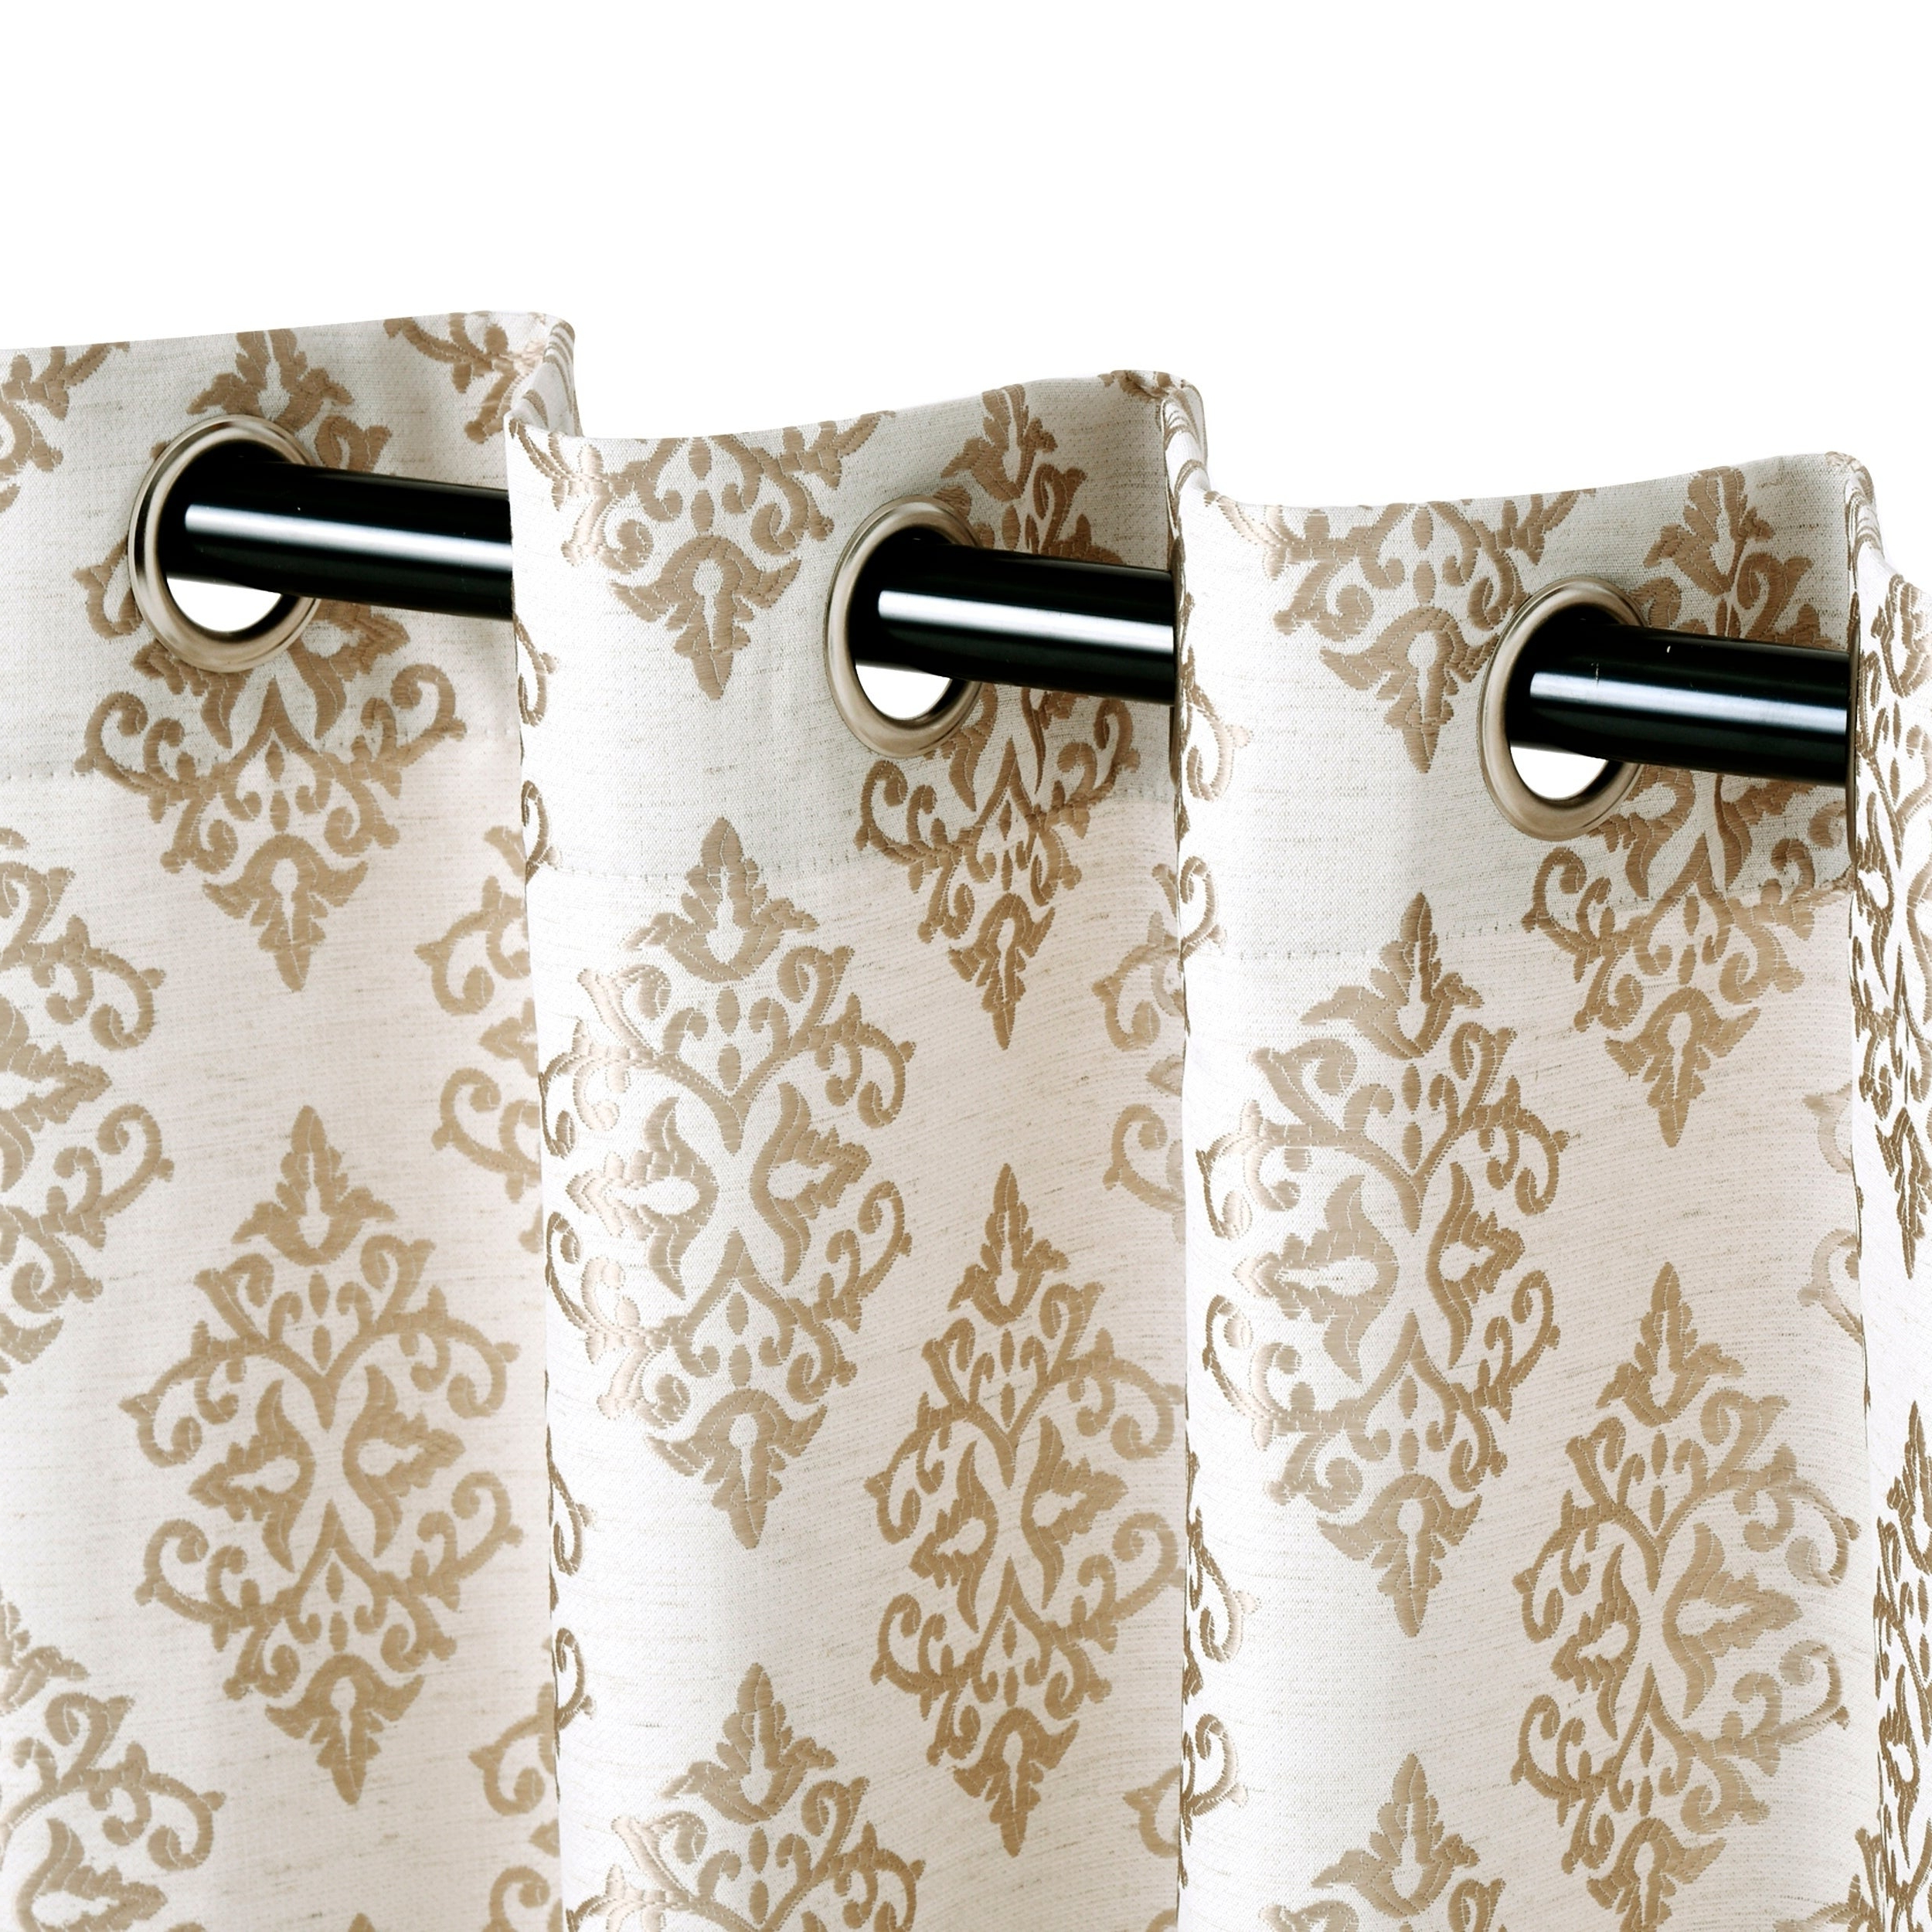 Widely Used Miranda Haus Labrea Damask Jacquard Grommet Curtain Panels In Miranda Haus Labrea Damask Jacquard Grommet Curtain Panel (set Of 2) (View 3 of 20)